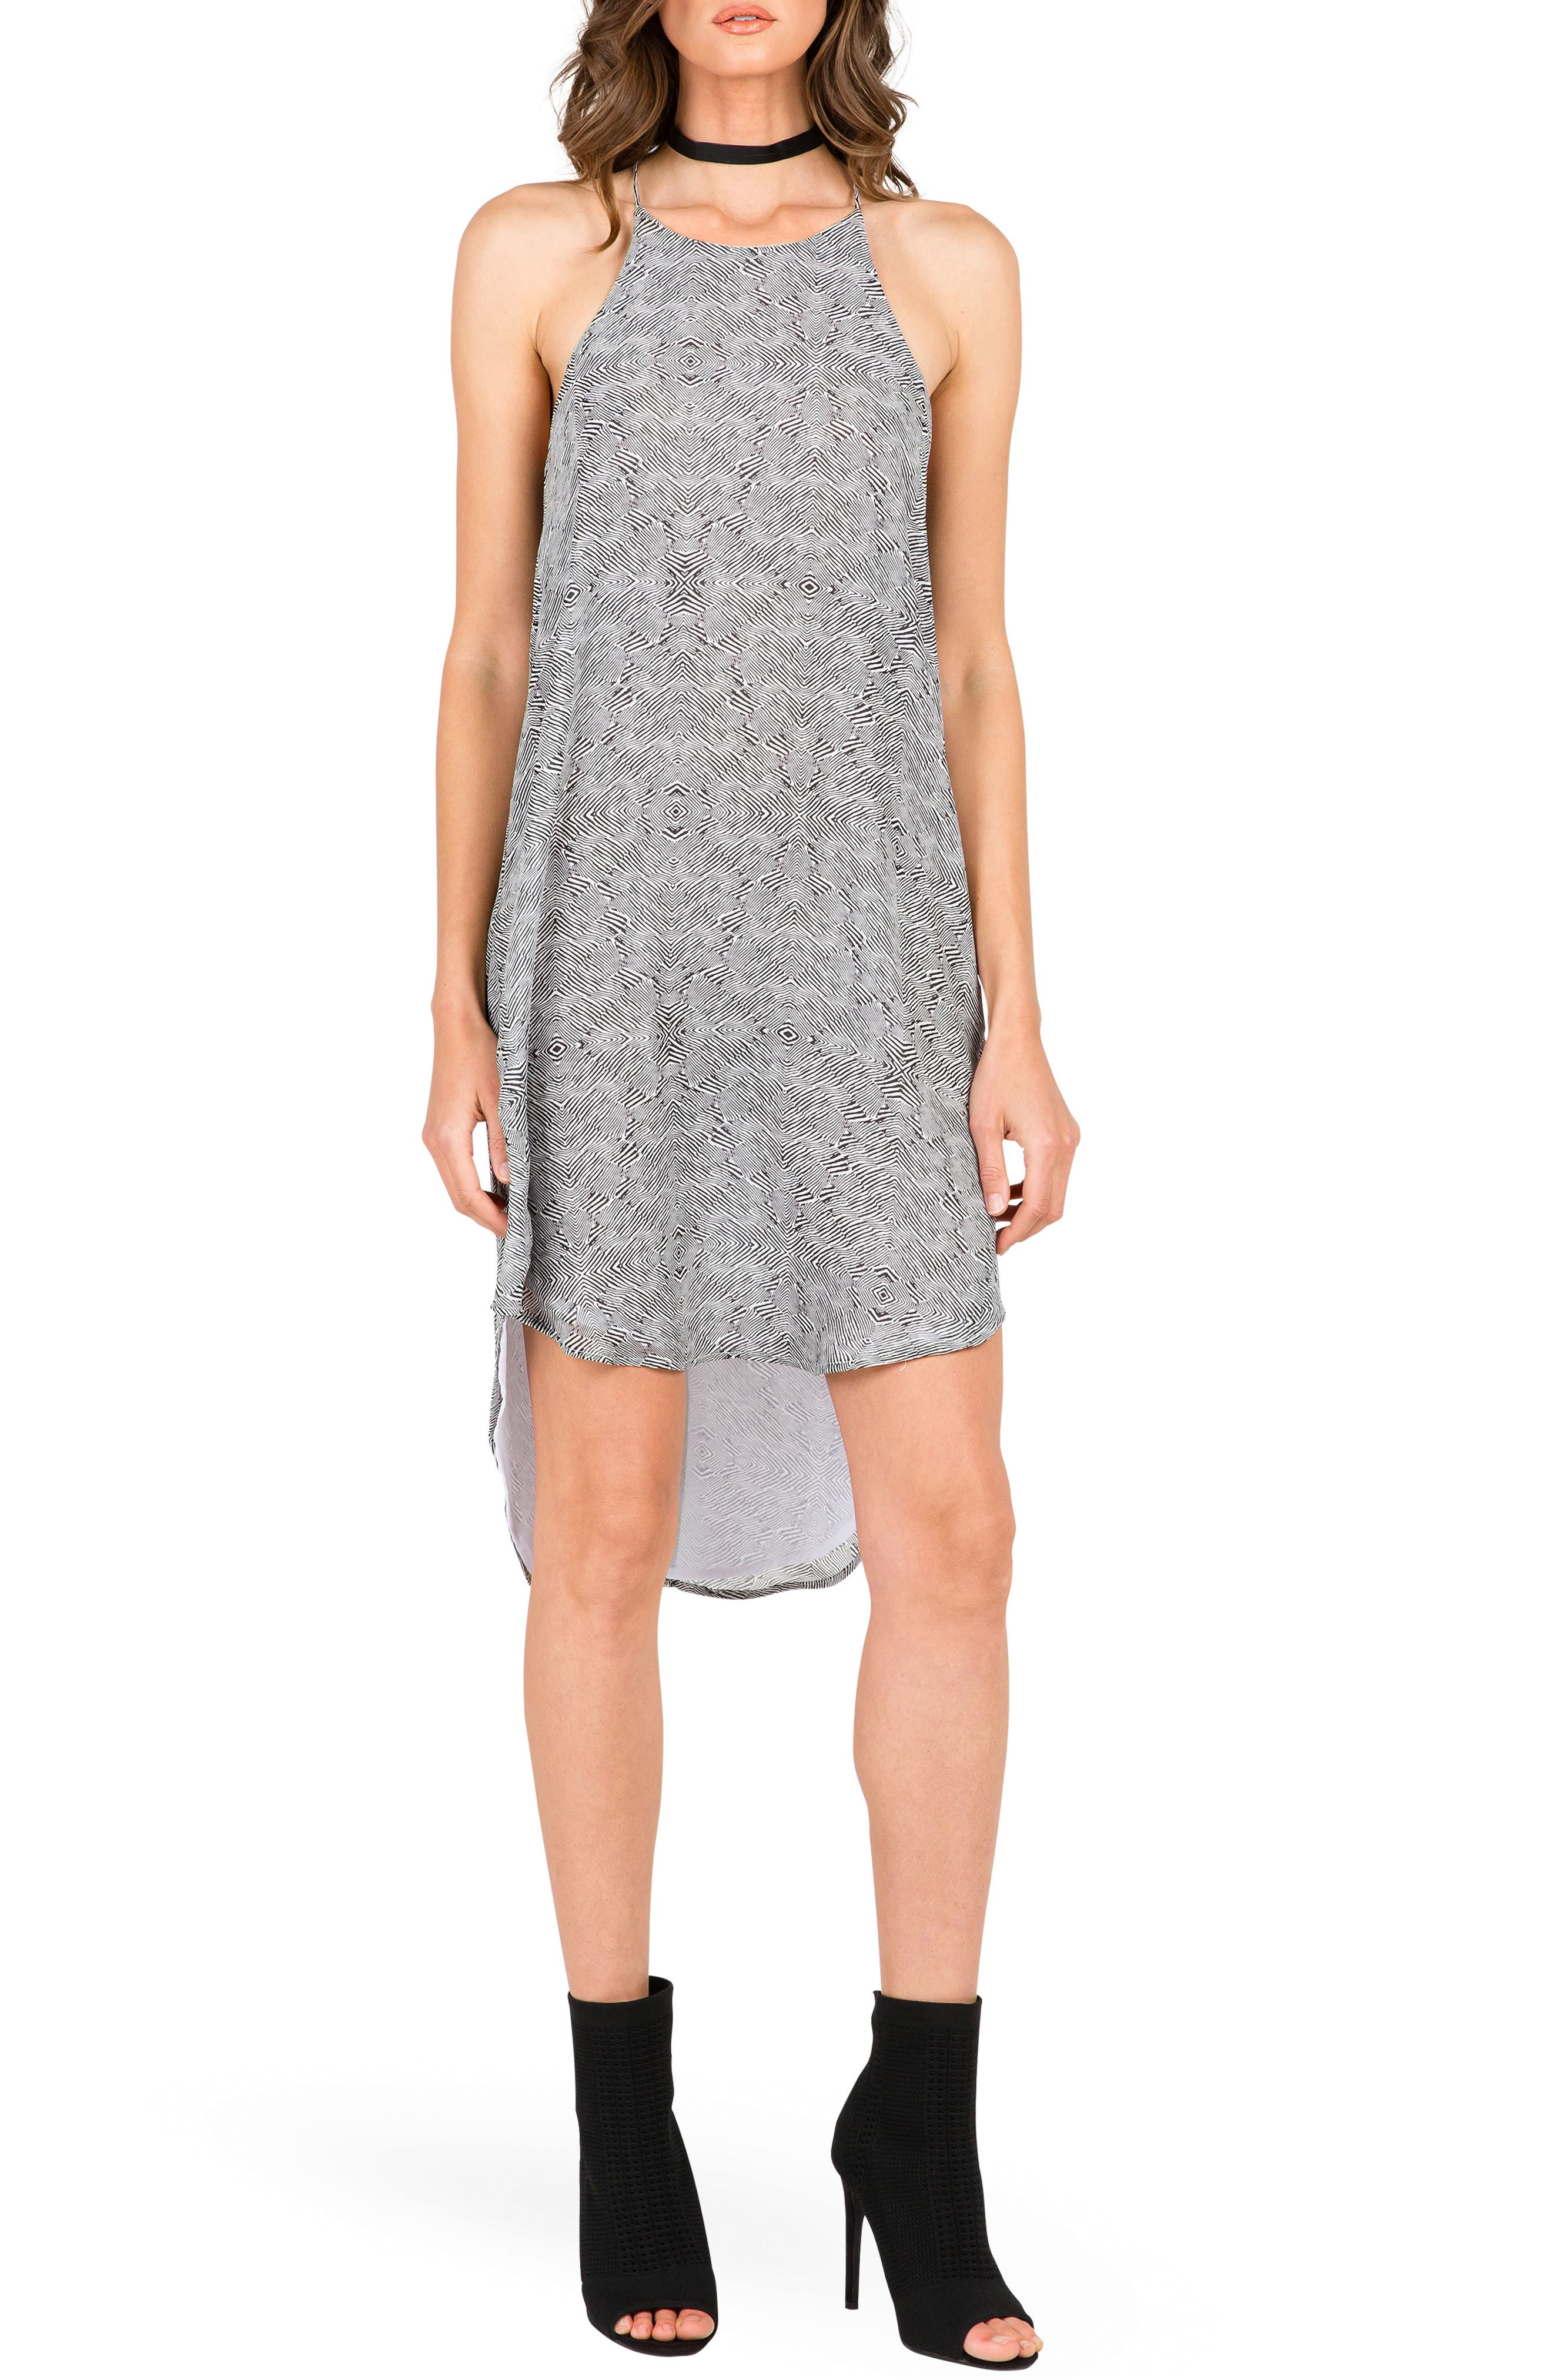 Standards & Practices Ashley Racerback High/Low Dress